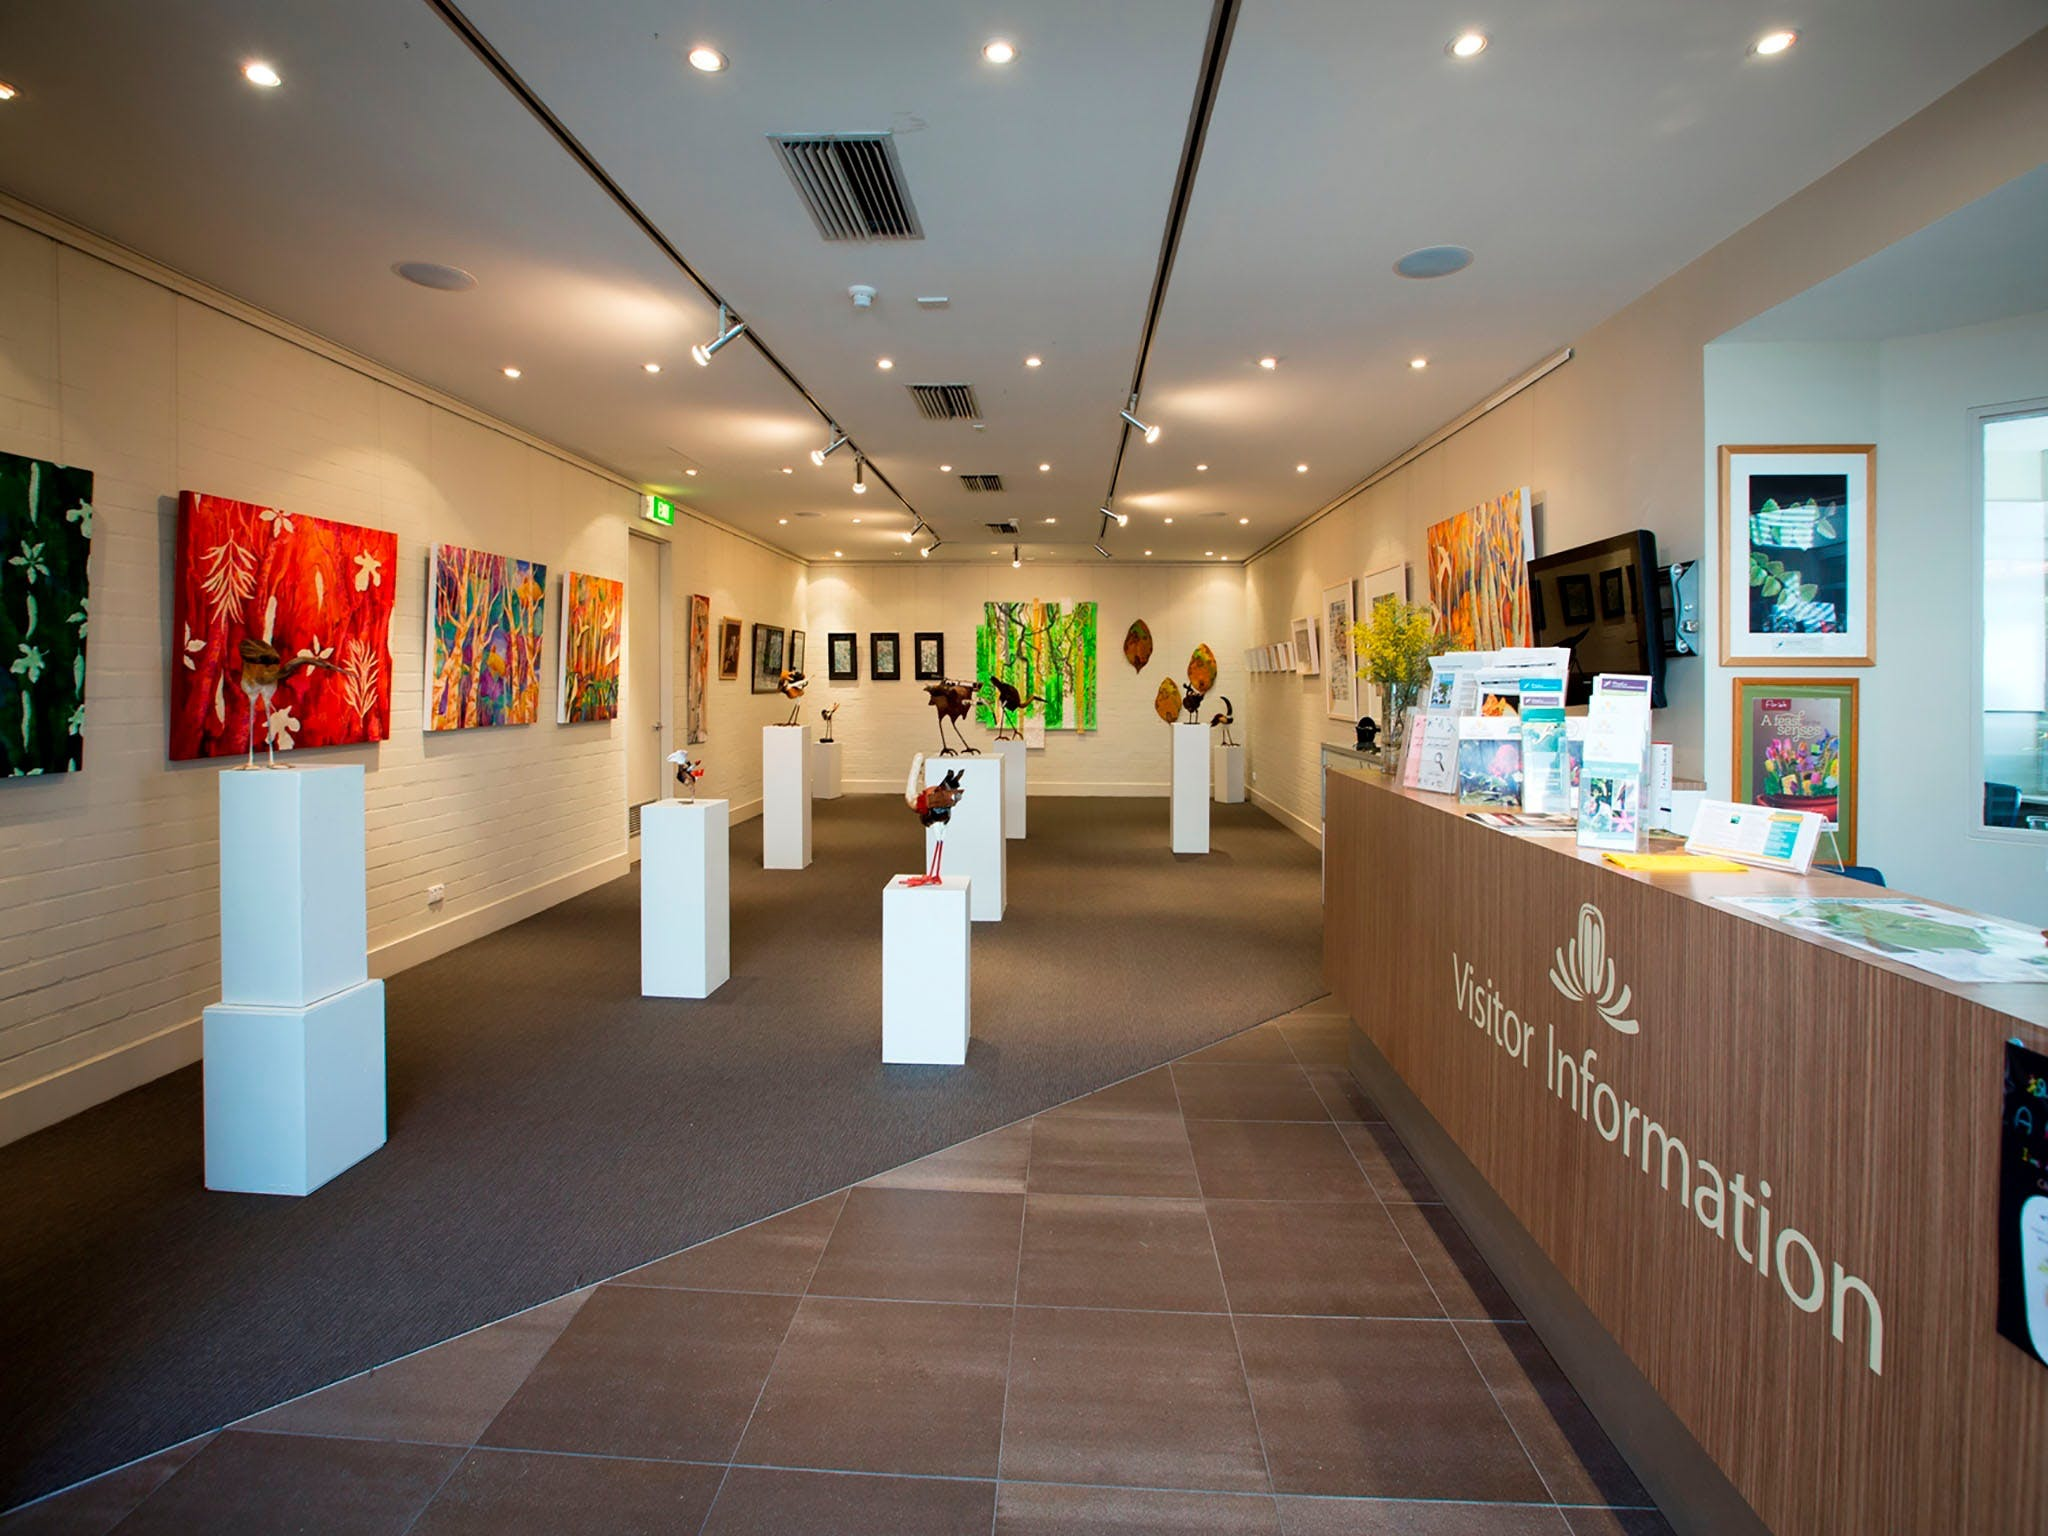 Australian National Botanic Gardens Visitor Centre Gallery - Whitsundays Tourism